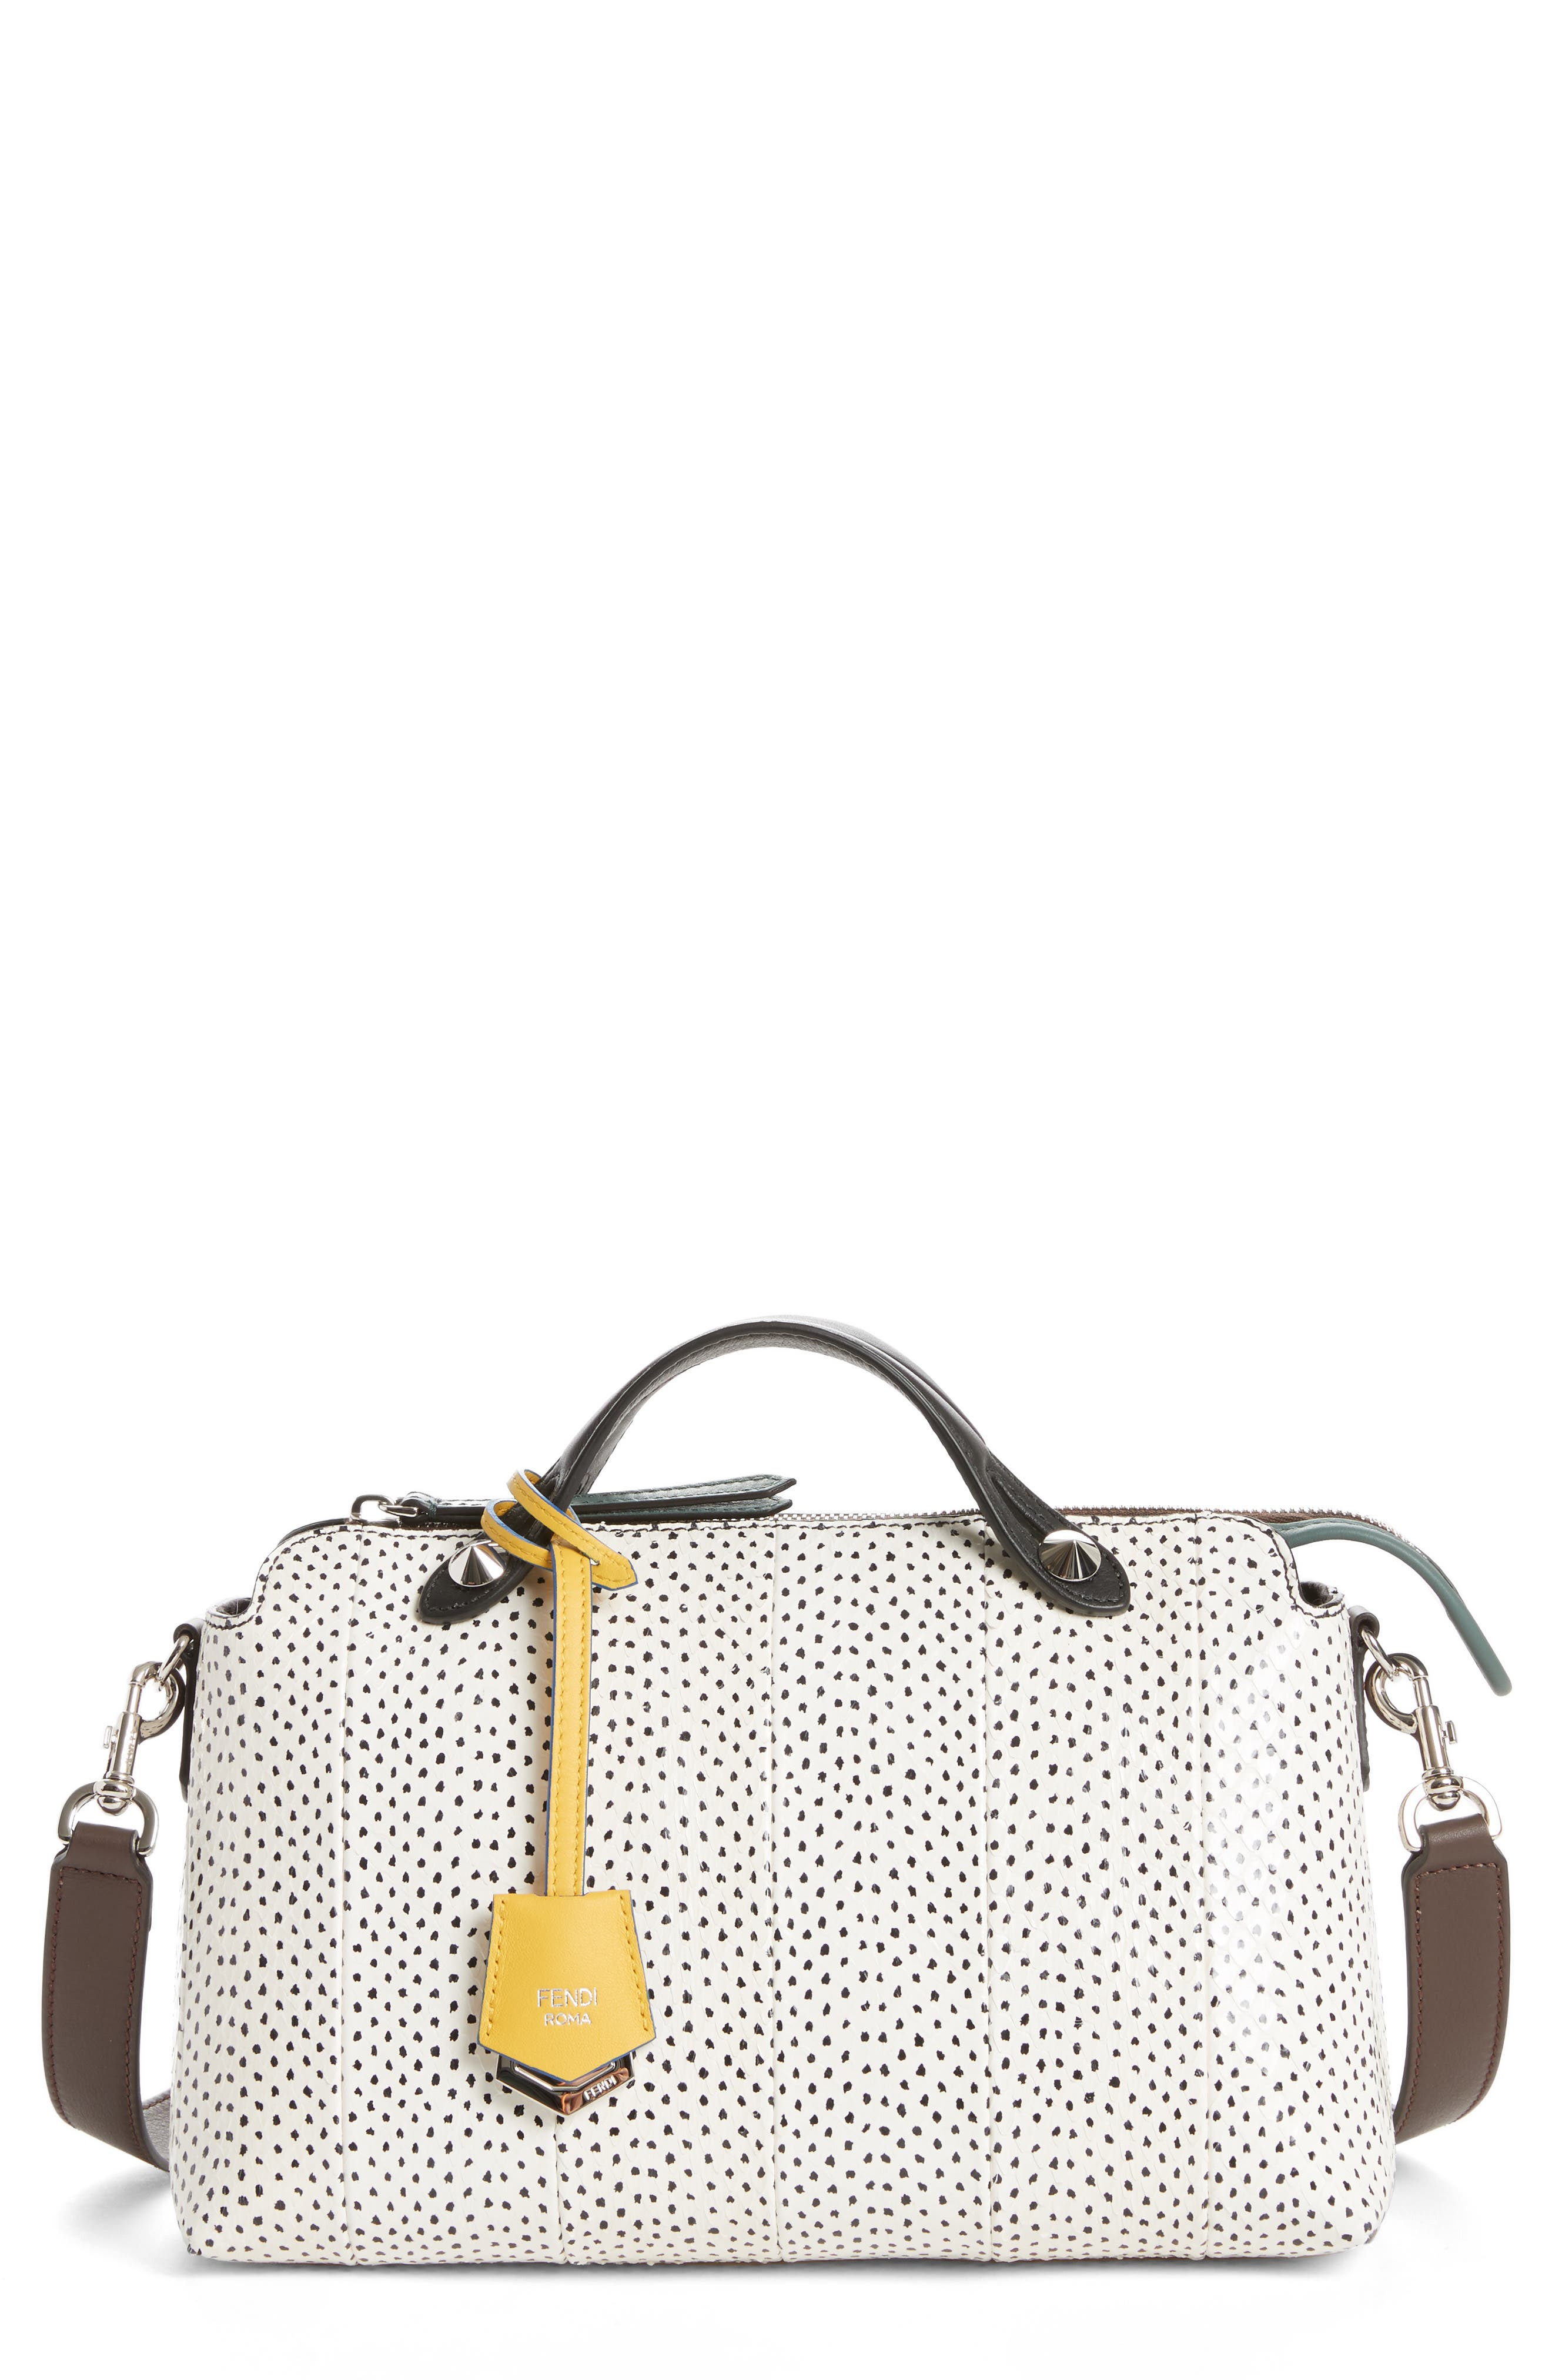 Medium By the Way Genuine Snakeskin Satchel,                             Alternate thumbnail 2, color,                             143